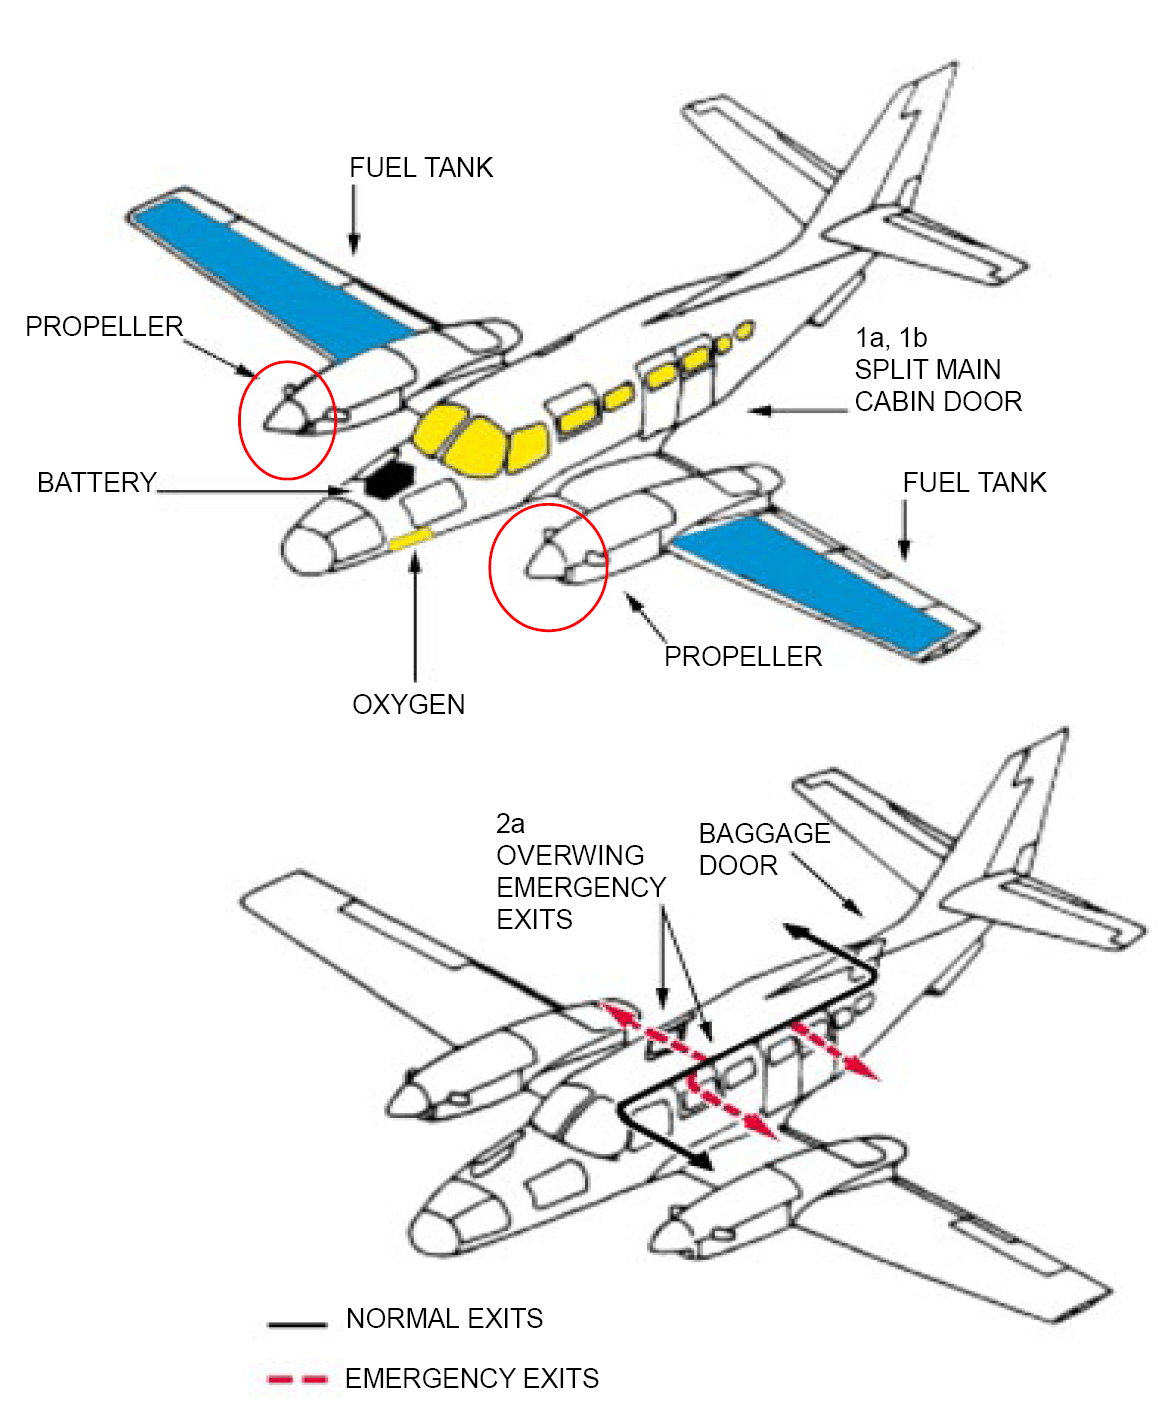 cessna 406 diagram 1998 ford explorer trailer wiring file reims f406 handling instructions usaf png wikimedia